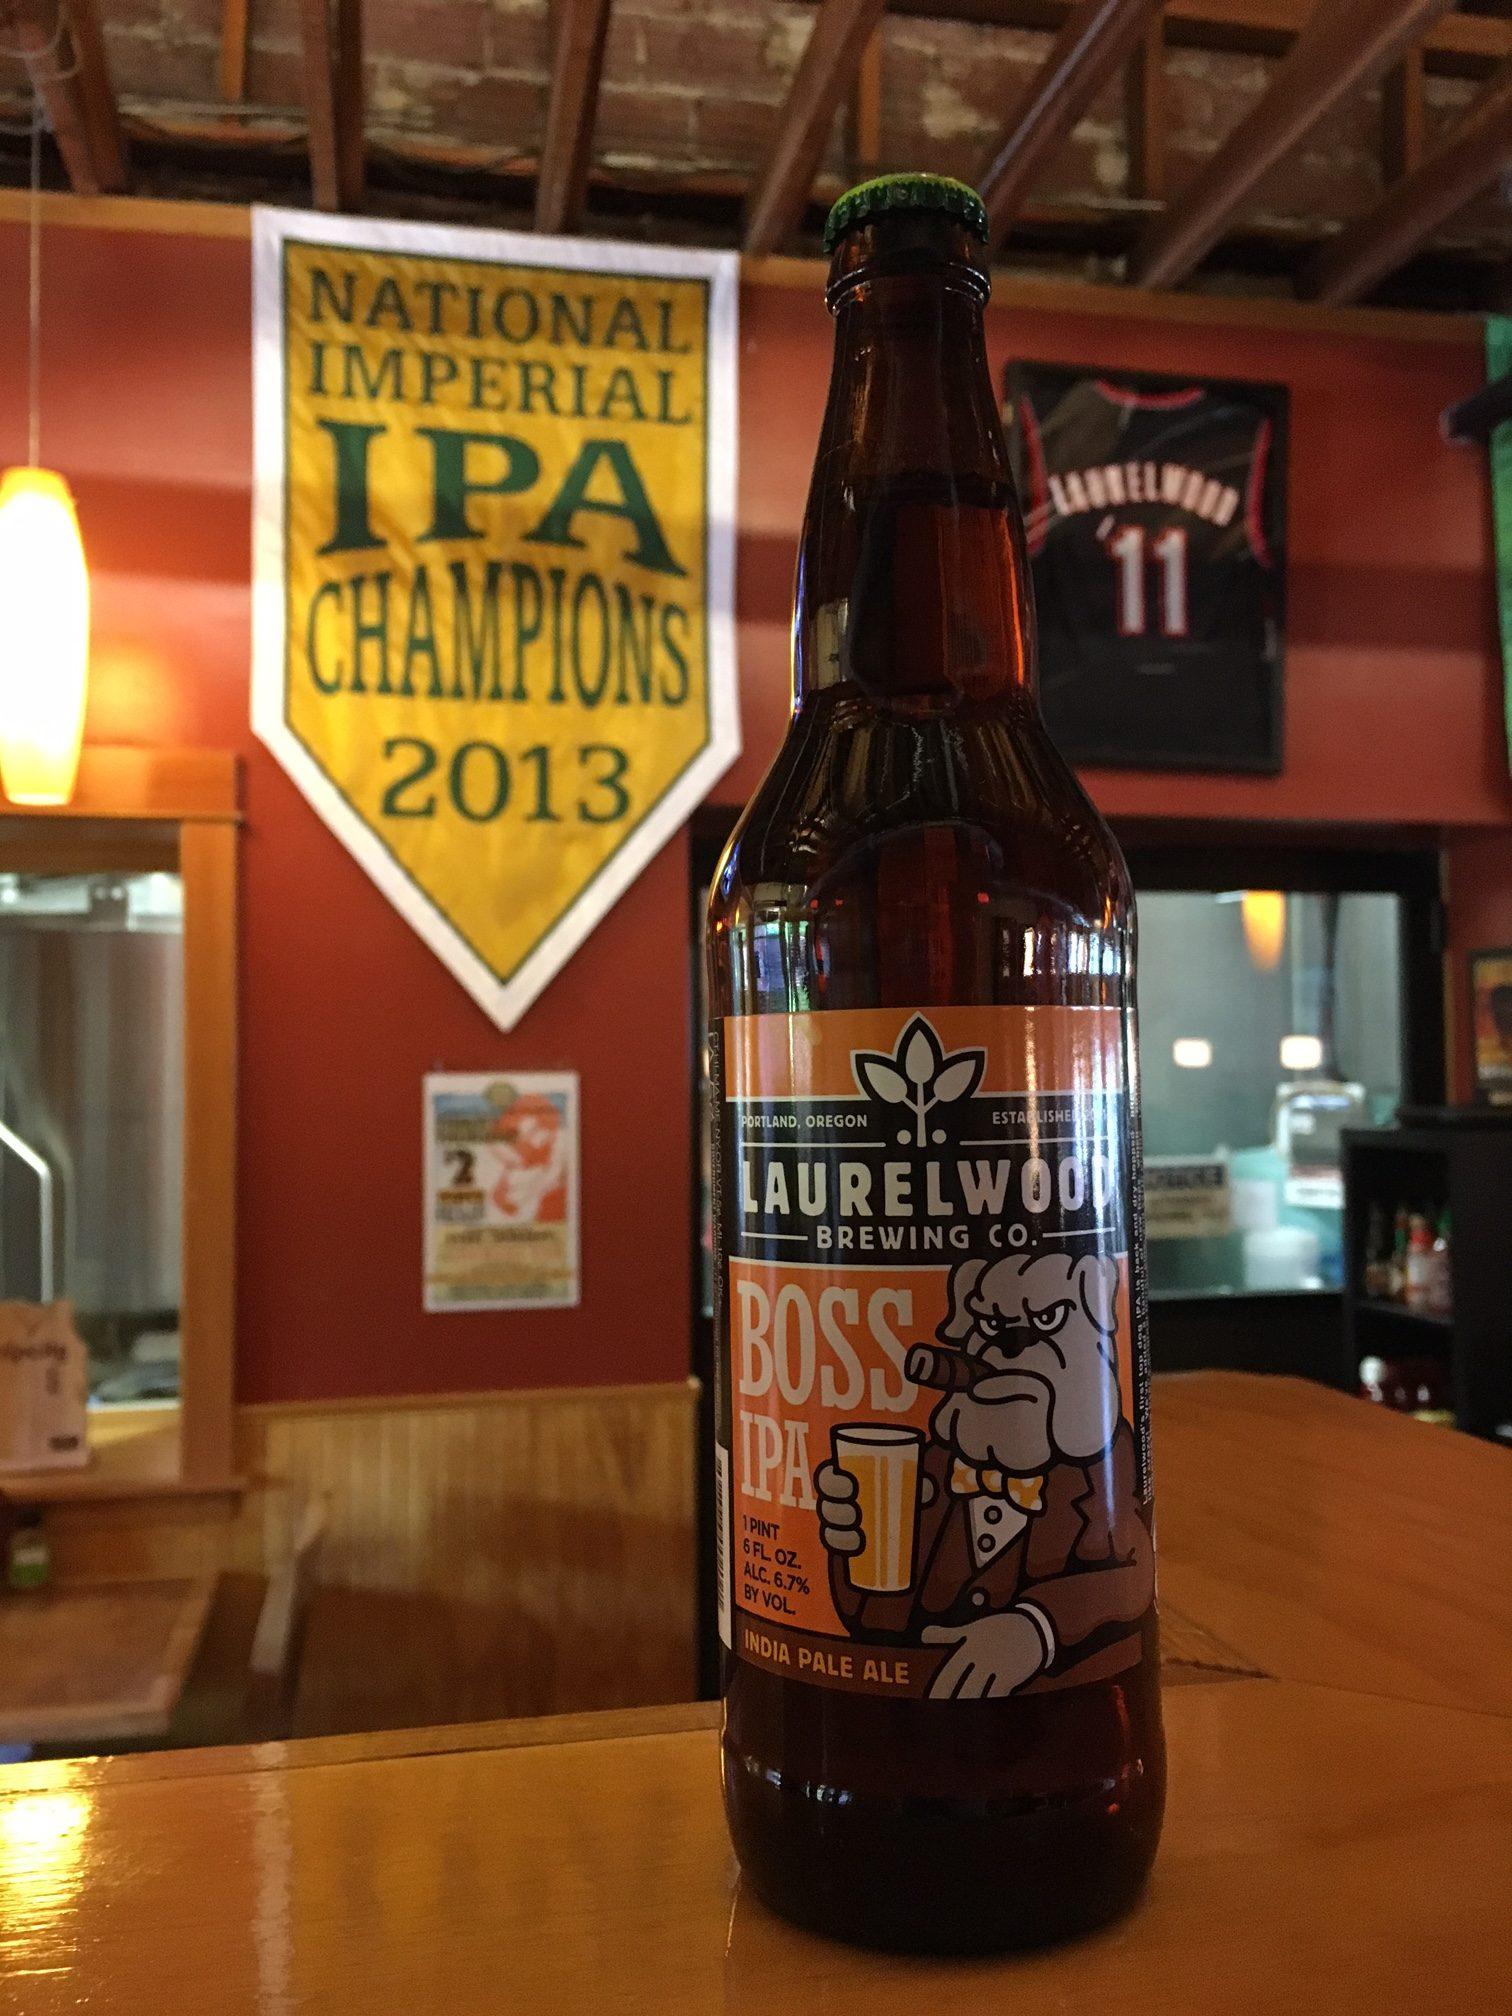 Laurelwood Boss IPA in a 22 oz. bottle at the brewery.